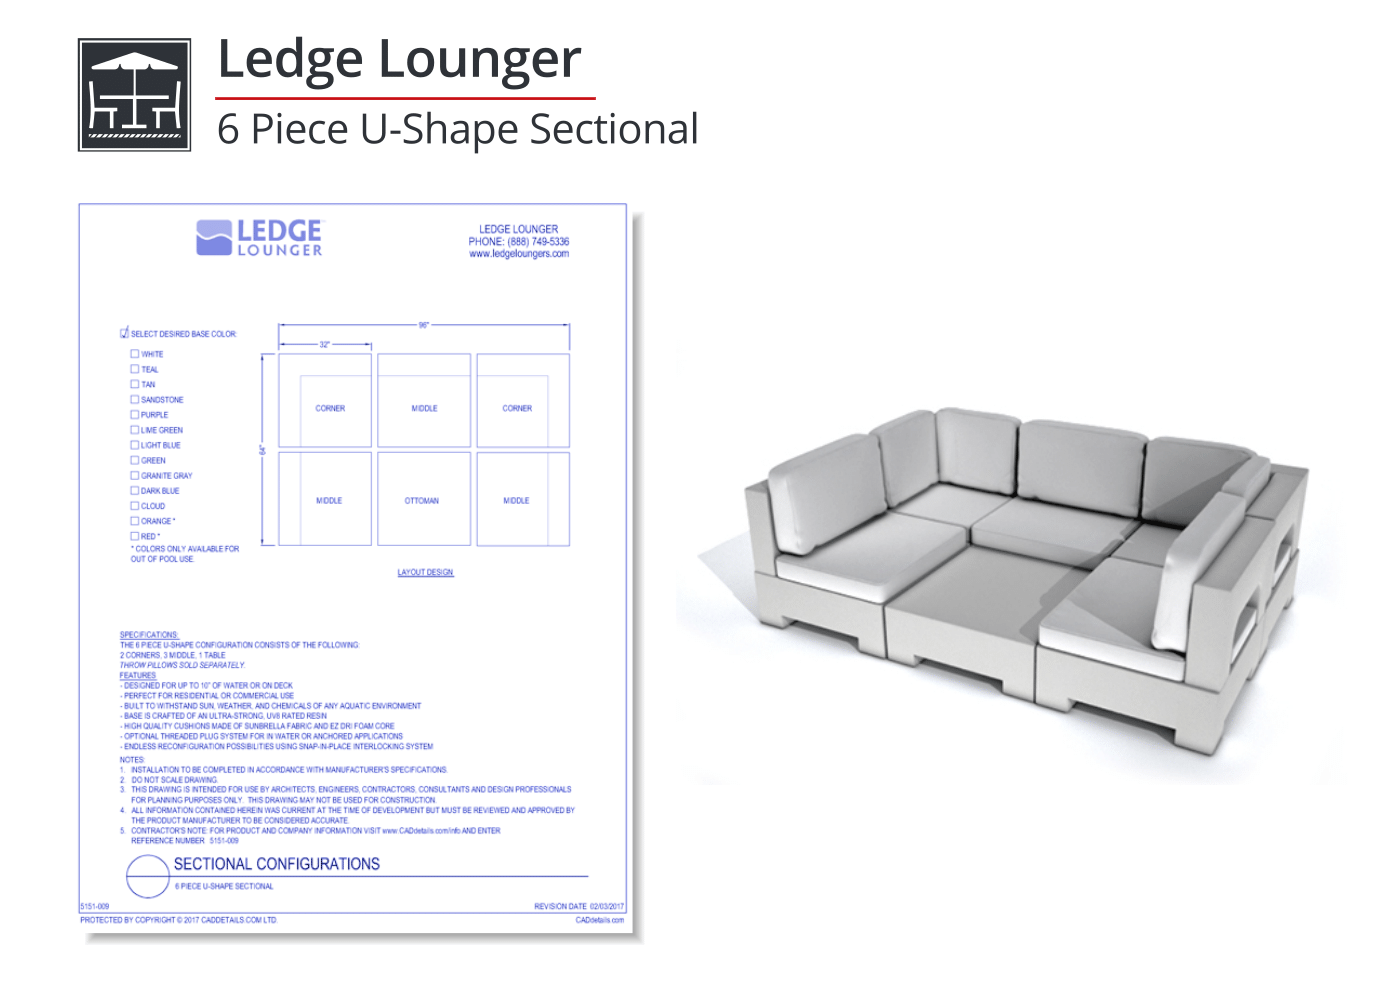 Ledge-Lounger-6-Piece-U-Shape-Sectional-CAD-Drawing.png